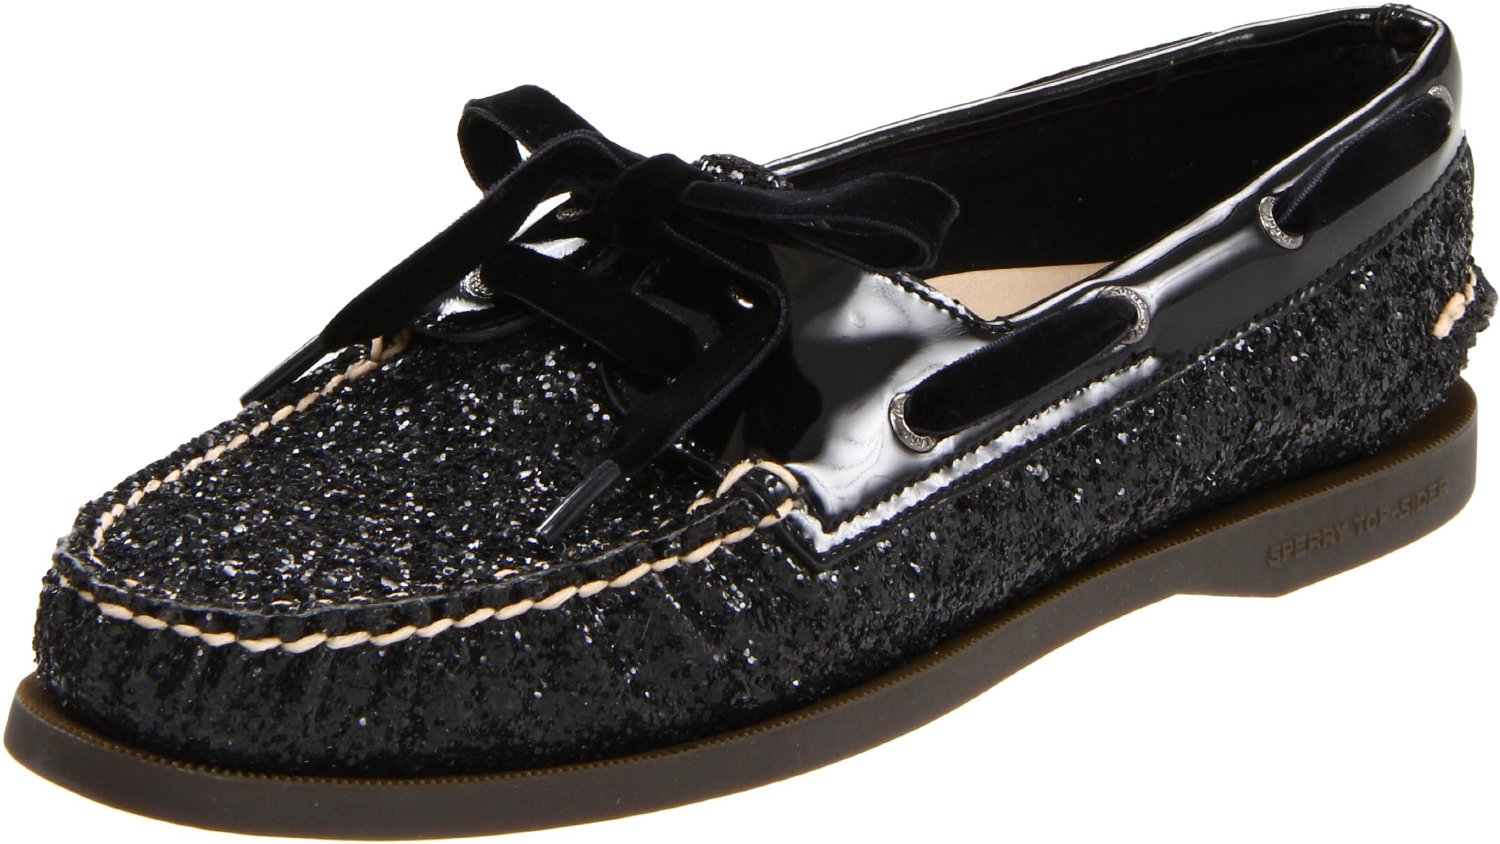 sperry top sider sperry topsider womens ao boat shoe in black